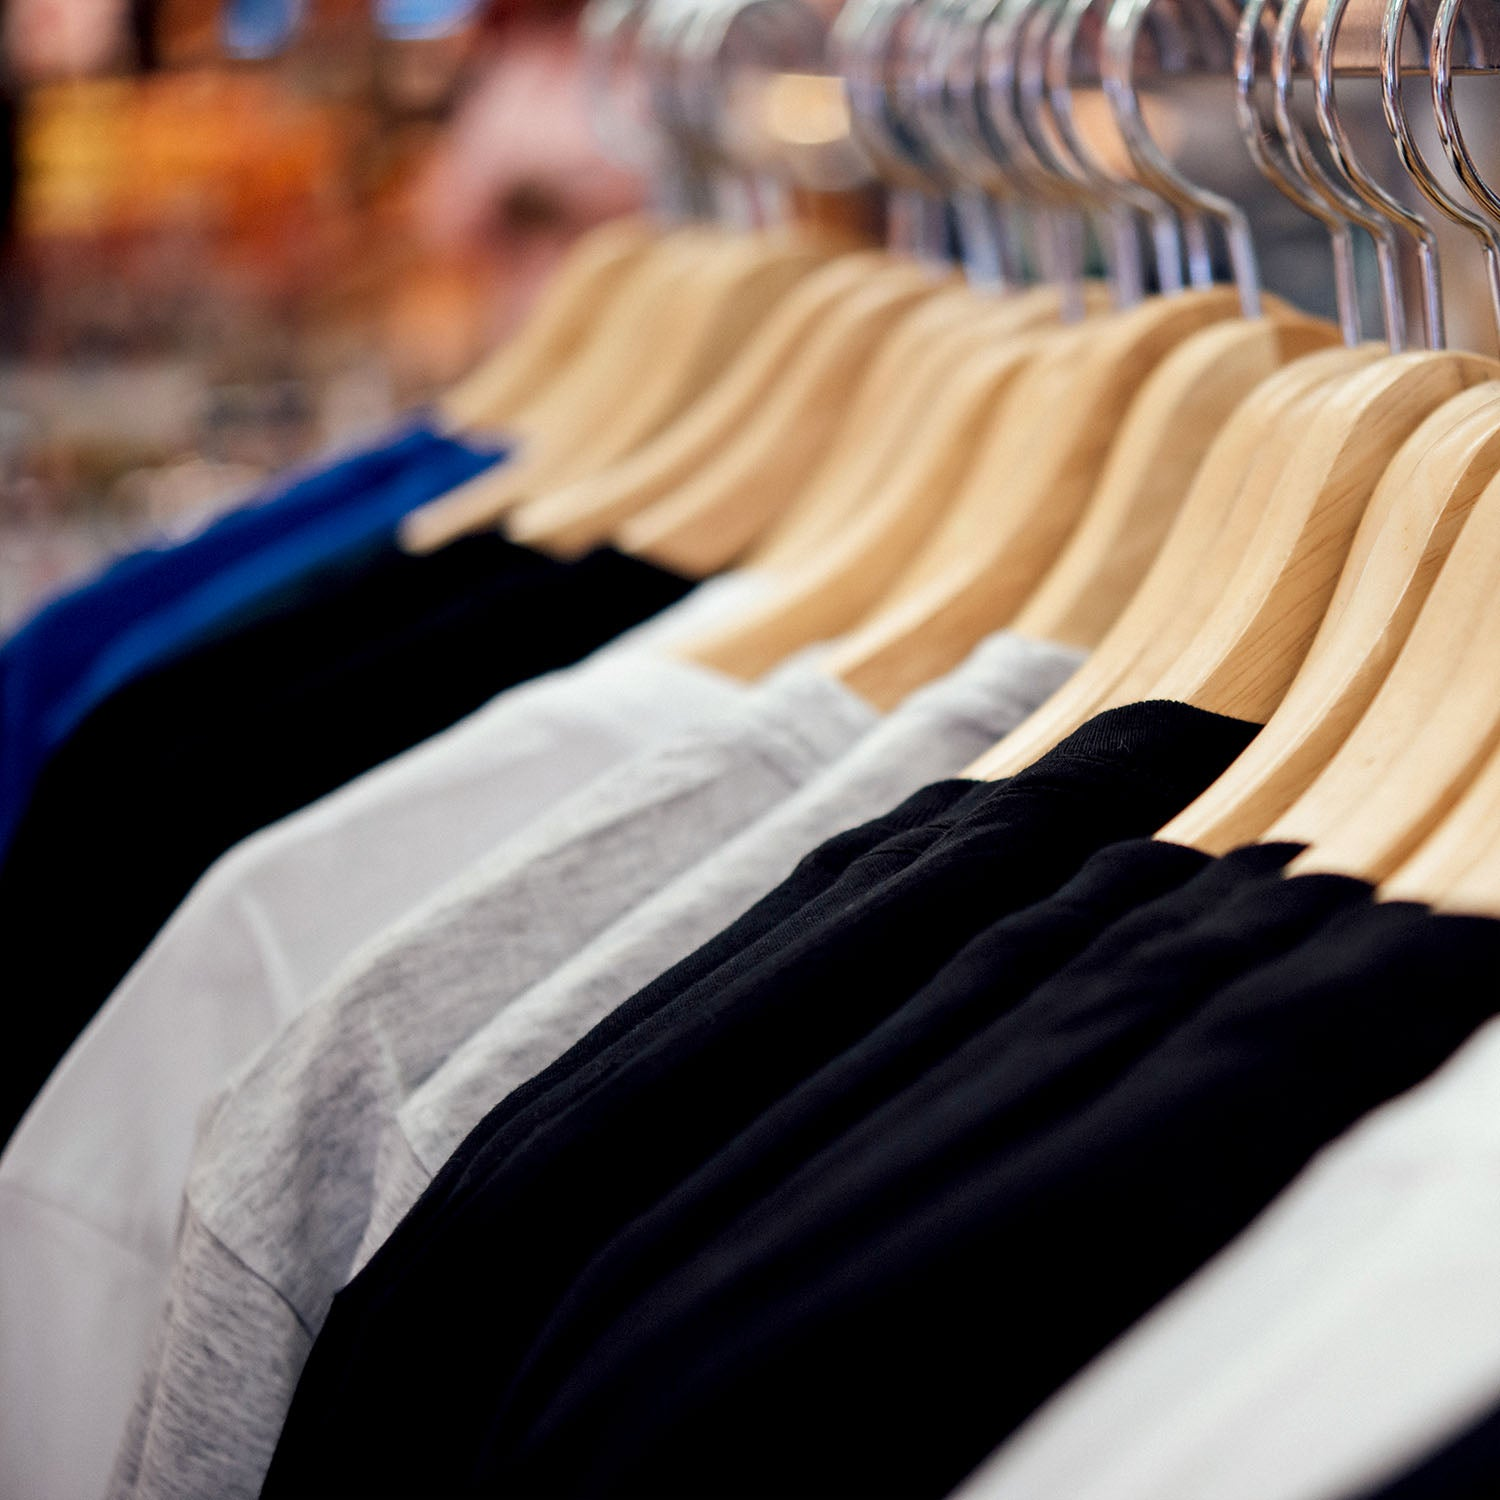 5 Habits to Help You Keep Your Closet Clutter-free